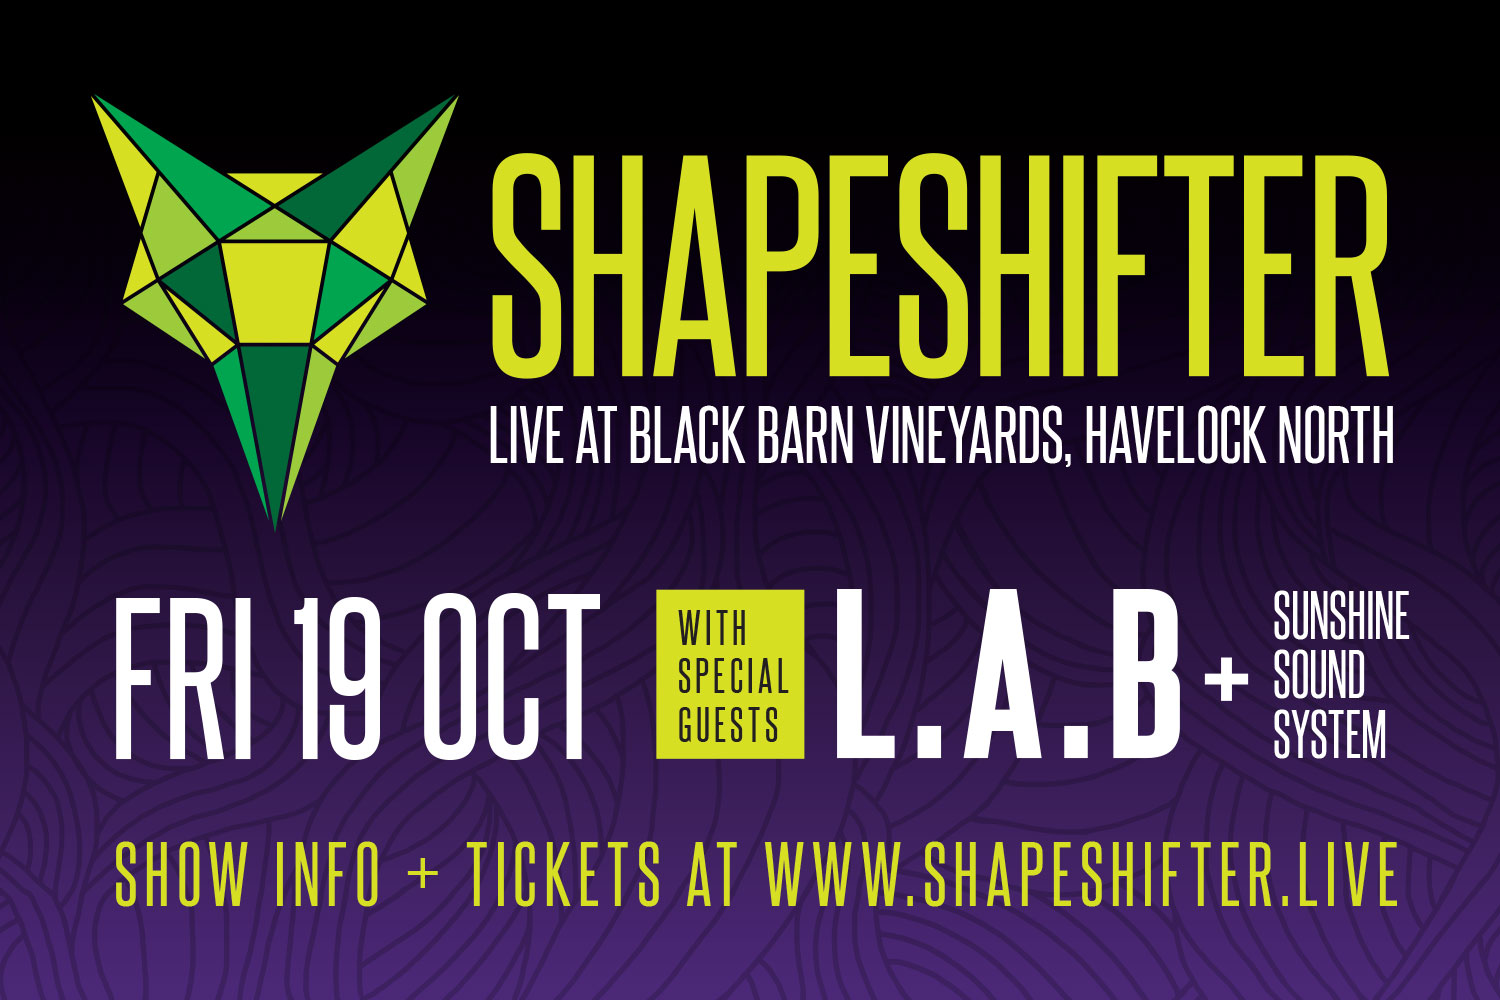 Banner digital design - Shapeshifter